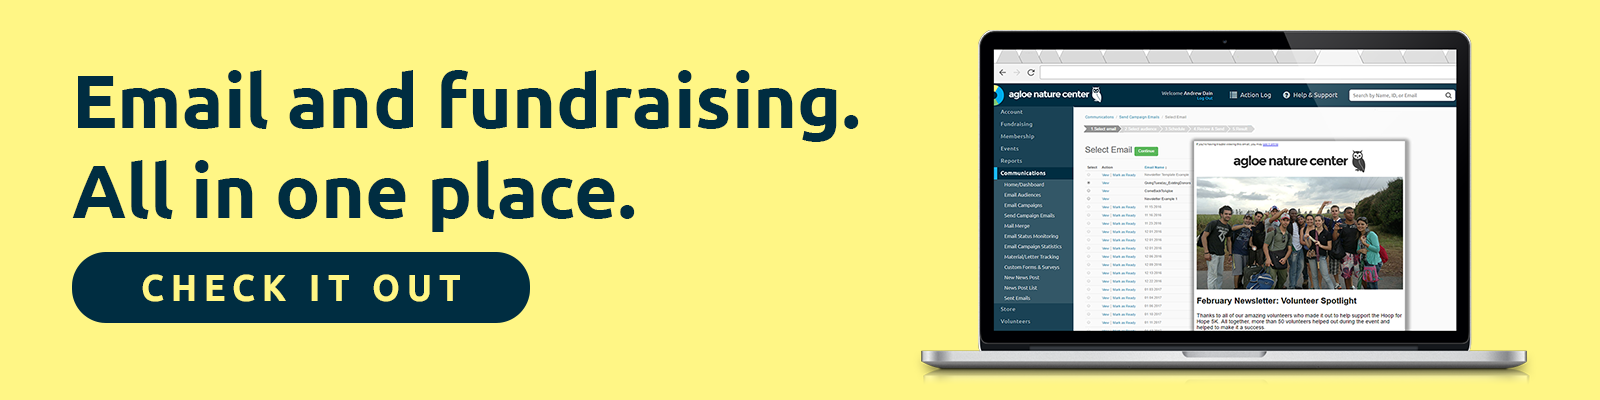 Email and fundraising. All in one place.